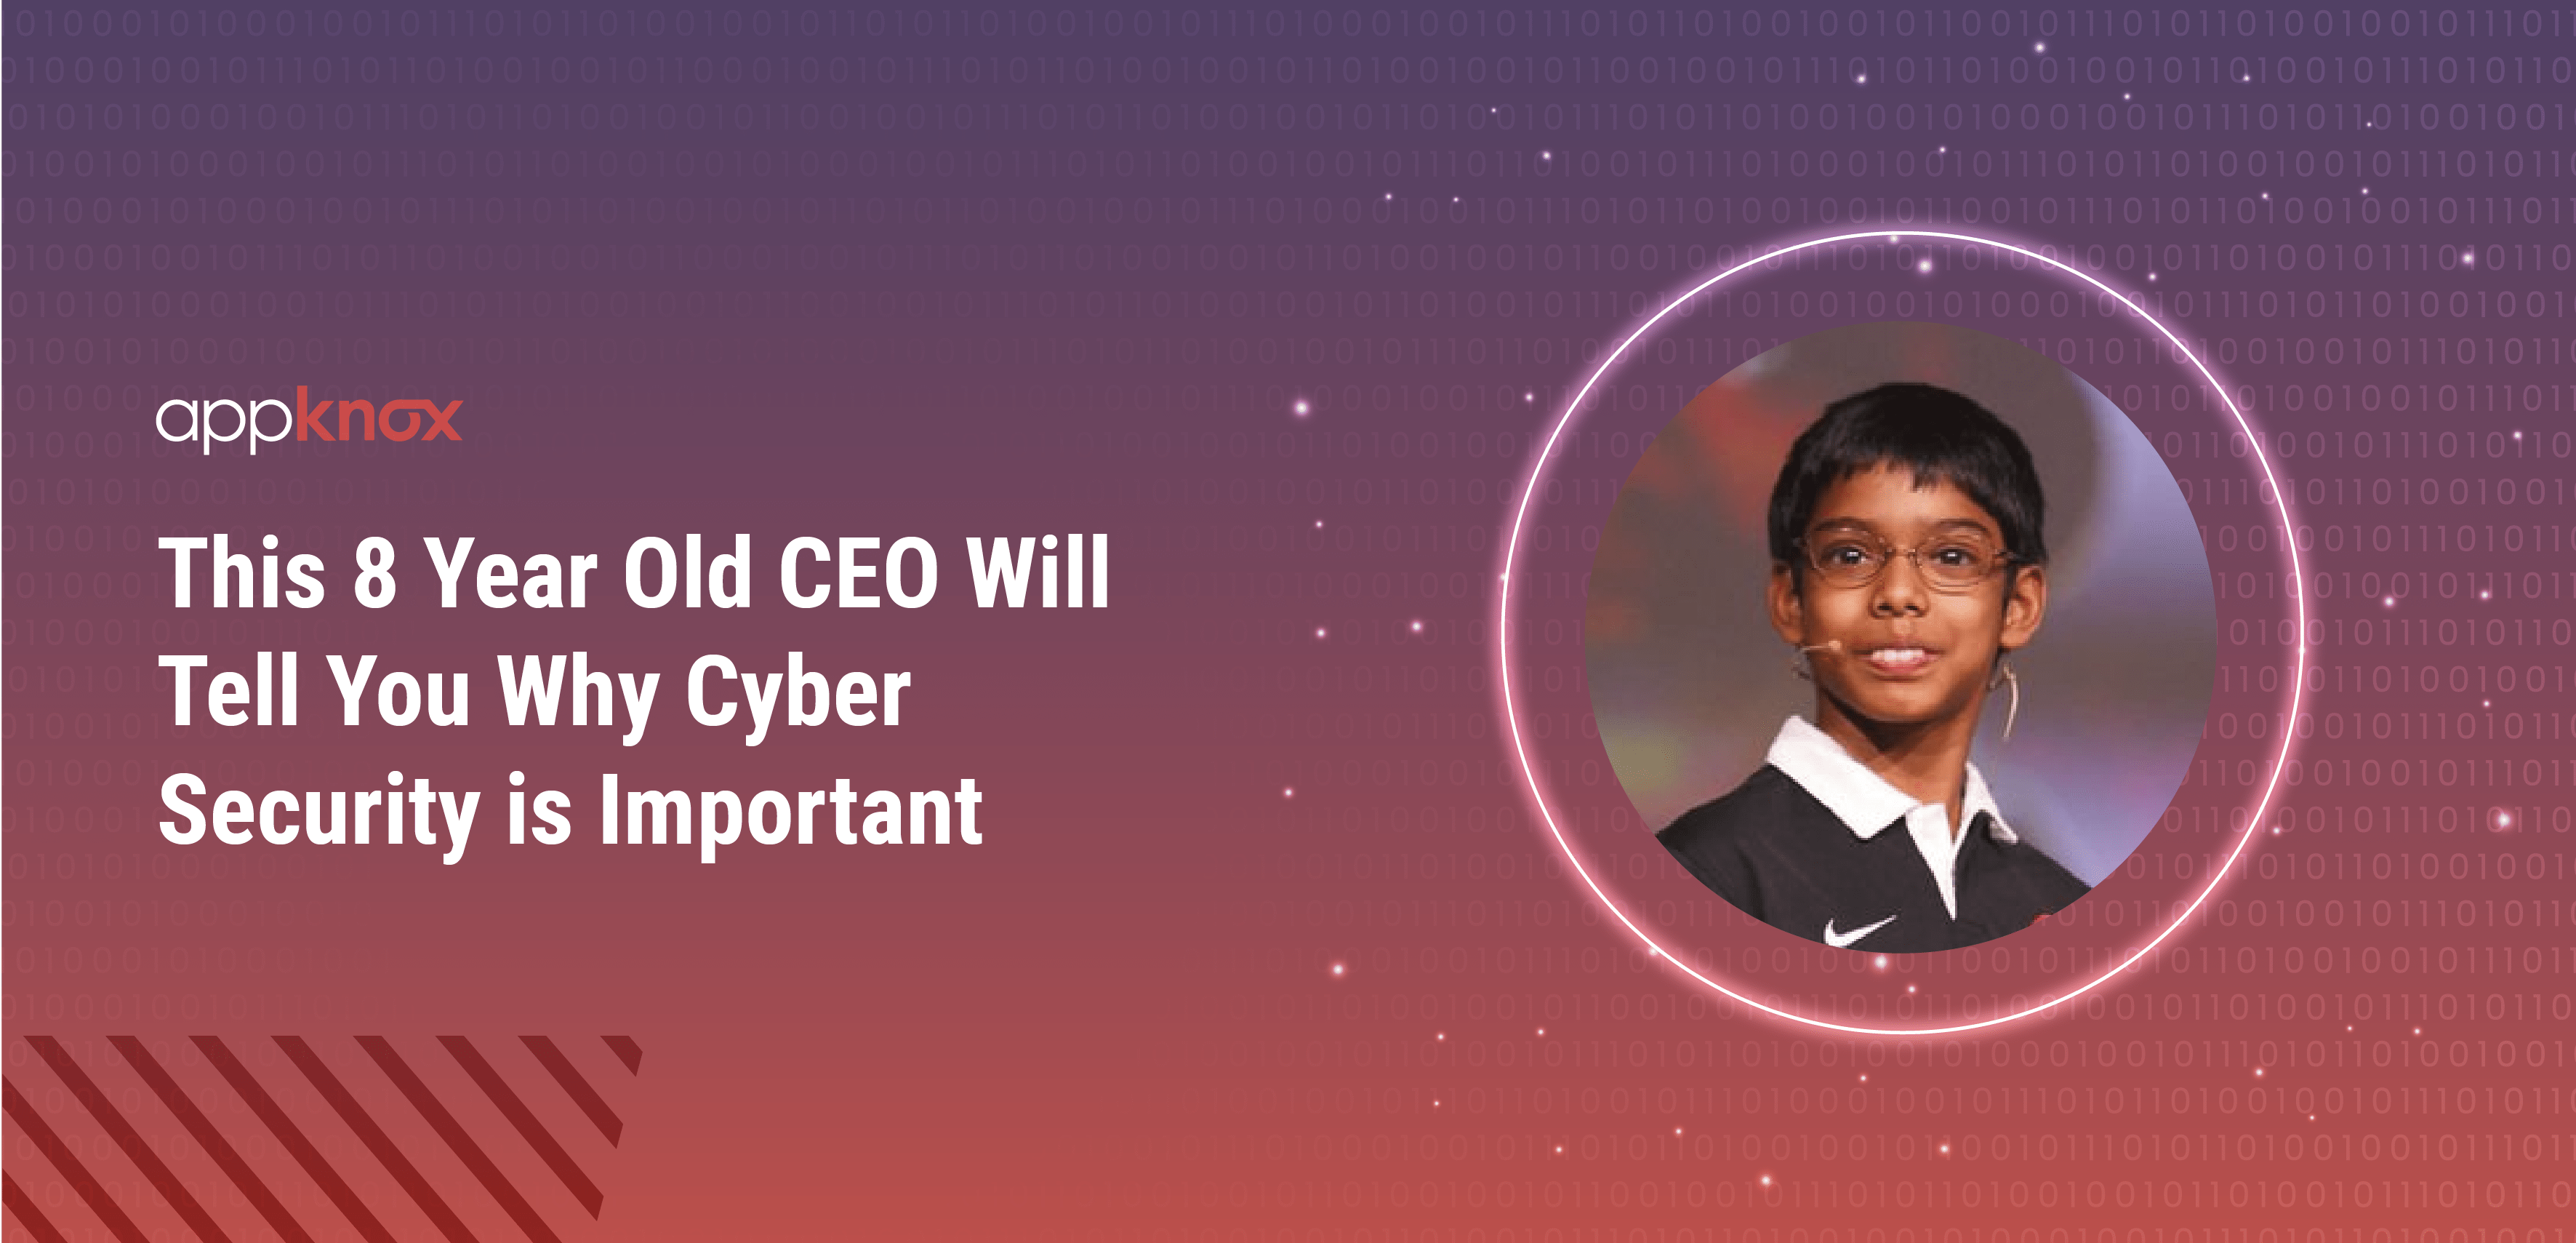 This 8 Year Old CEO Will Tell You Why Cyber Security is Important